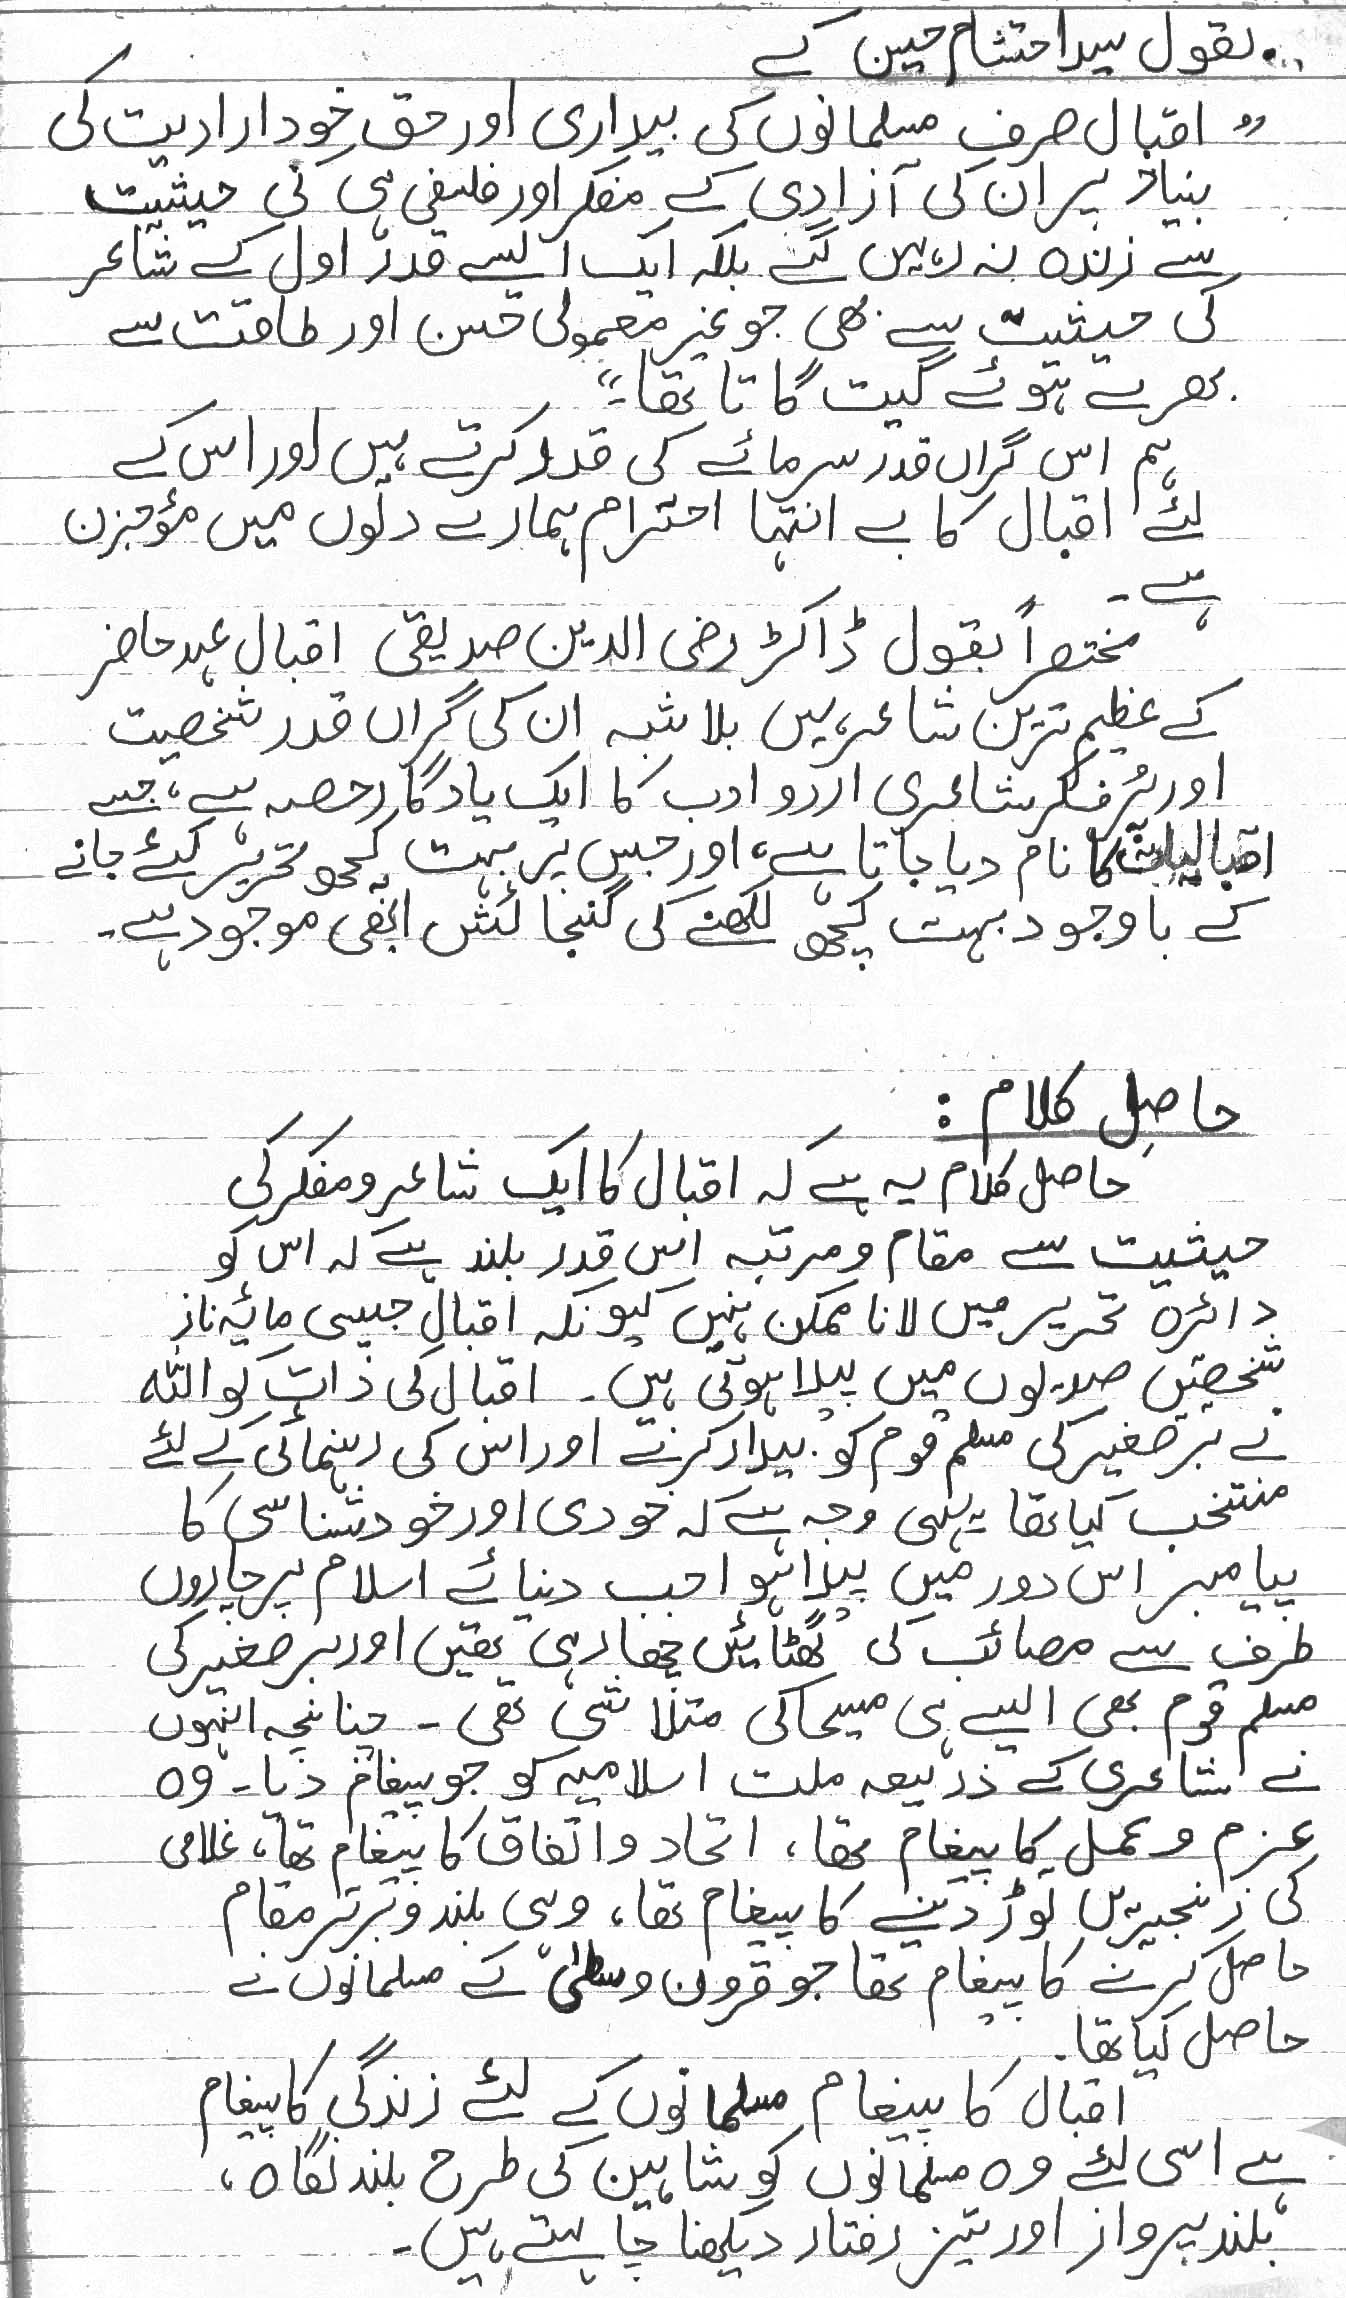 003 Jpg Urdu Essay Allama Iqbal Dreaded On In For Class 10 With Poetry Ka Shaheen Headings And Full